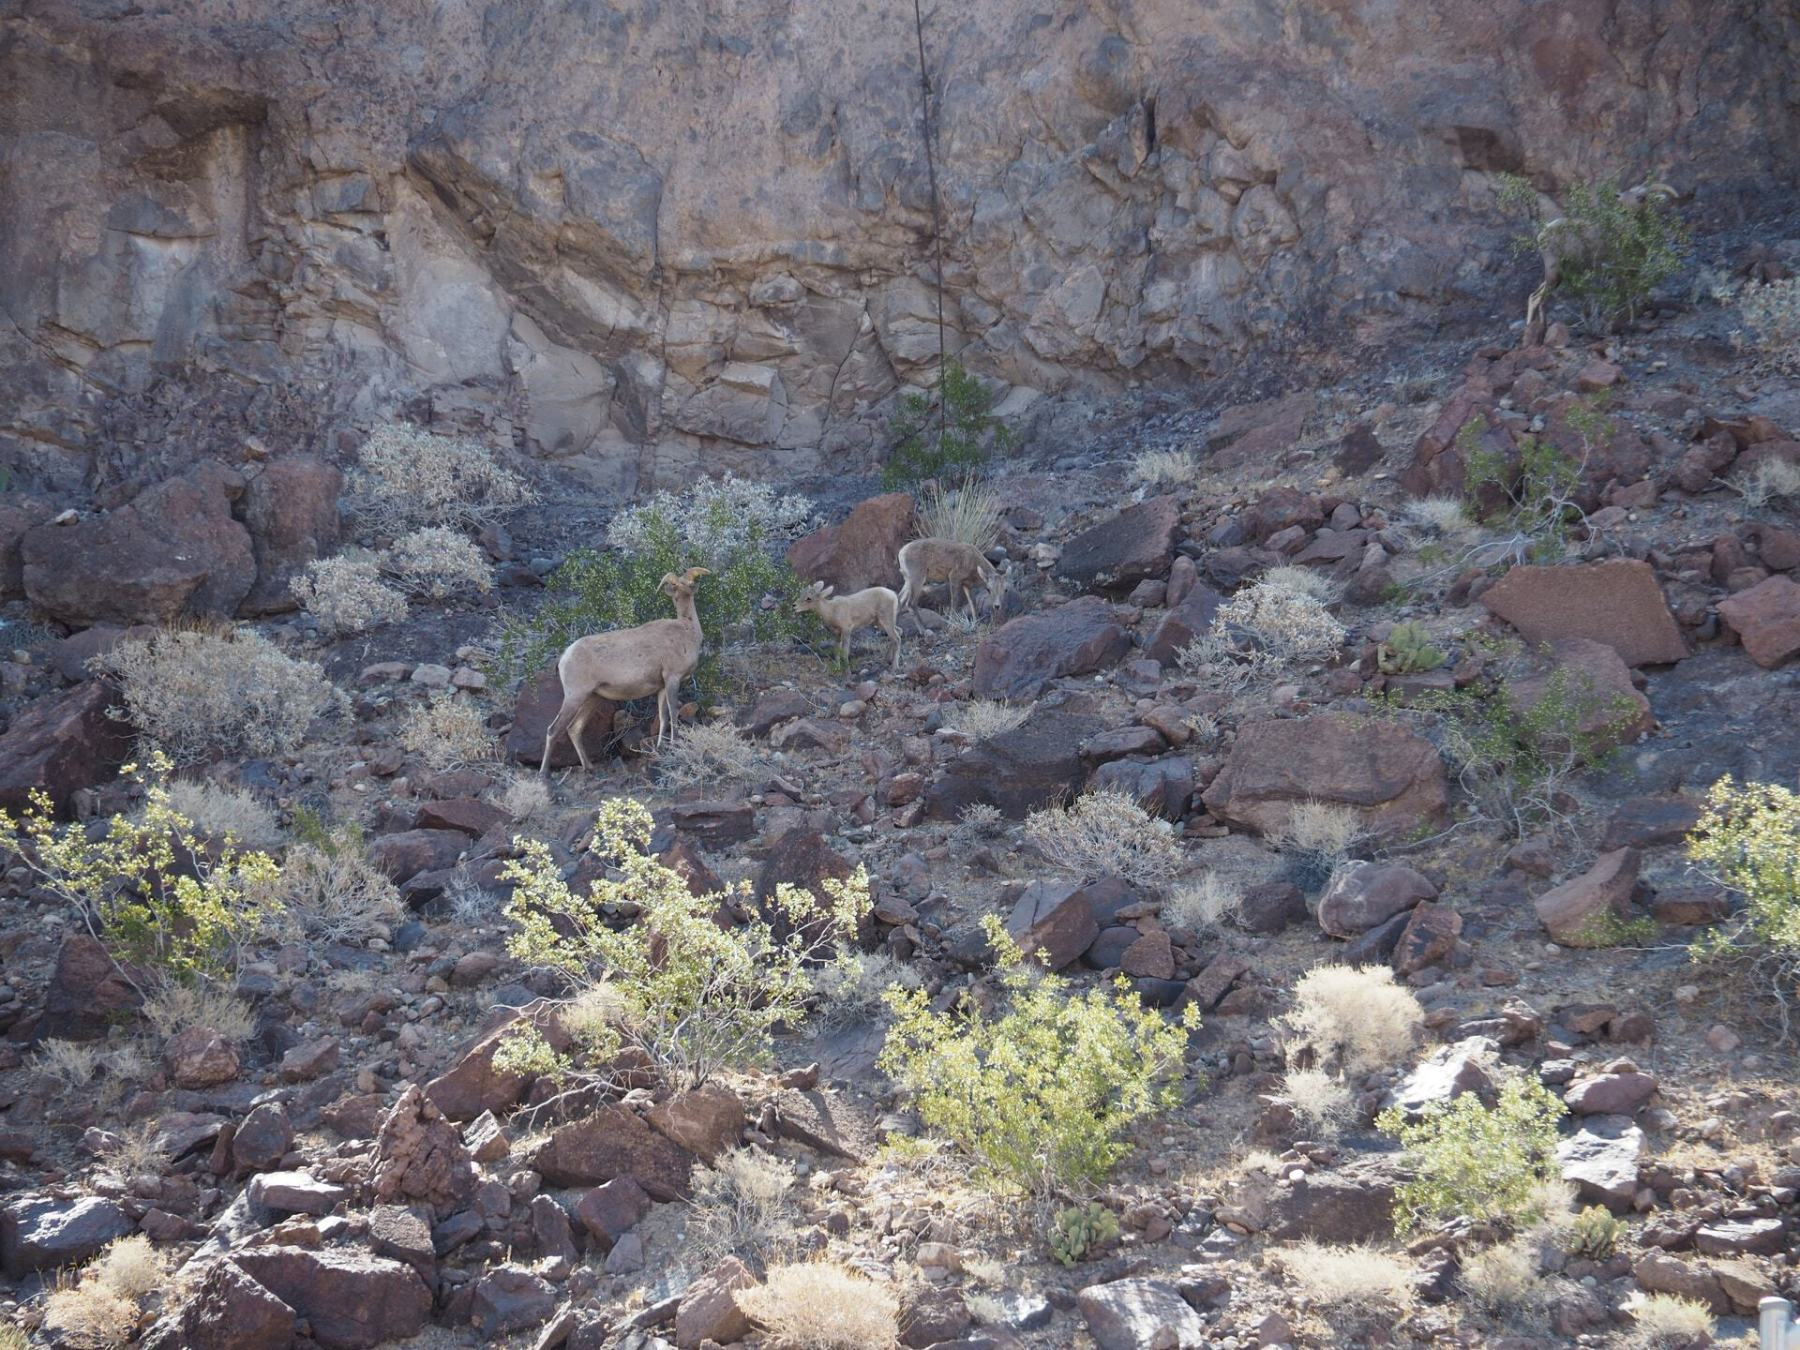 Wildlife near the Hoover Dam